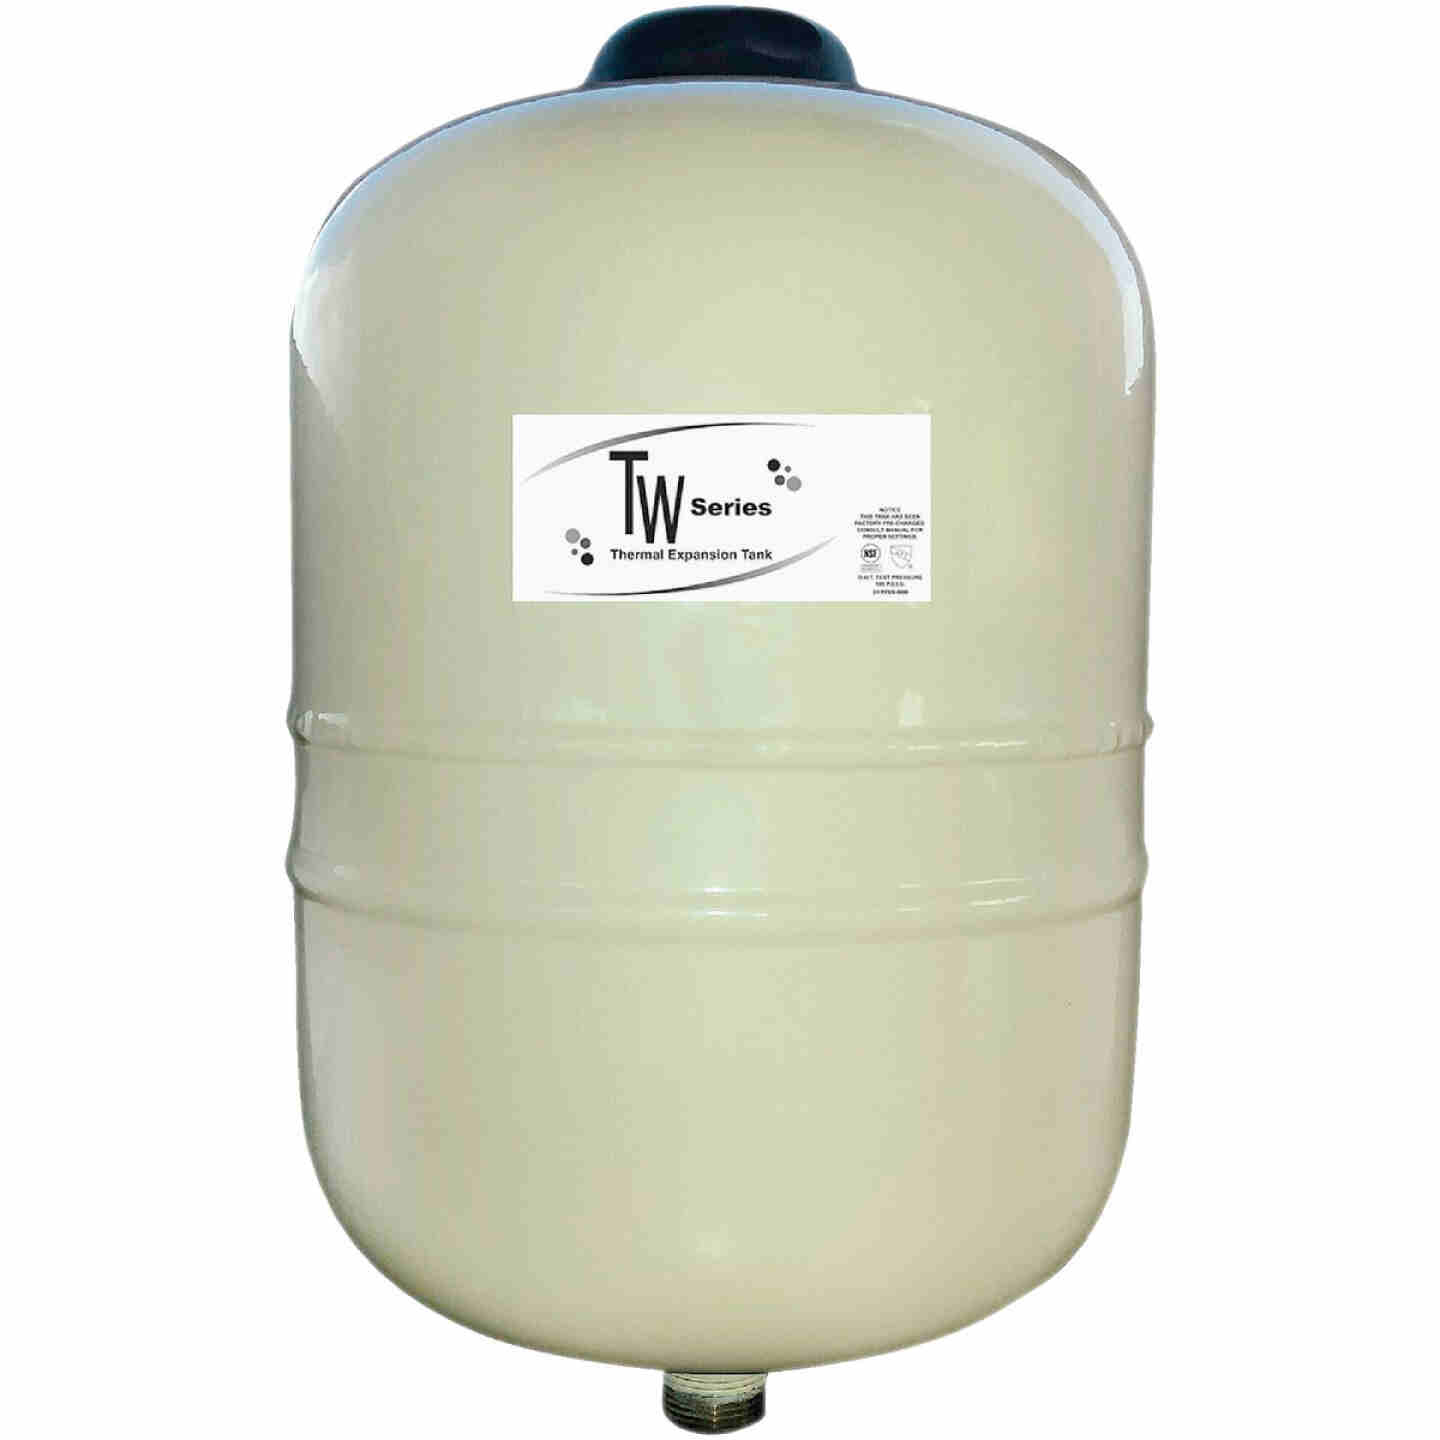 Reliance 5 Gal. Water Heater Expansion Tank Image 1